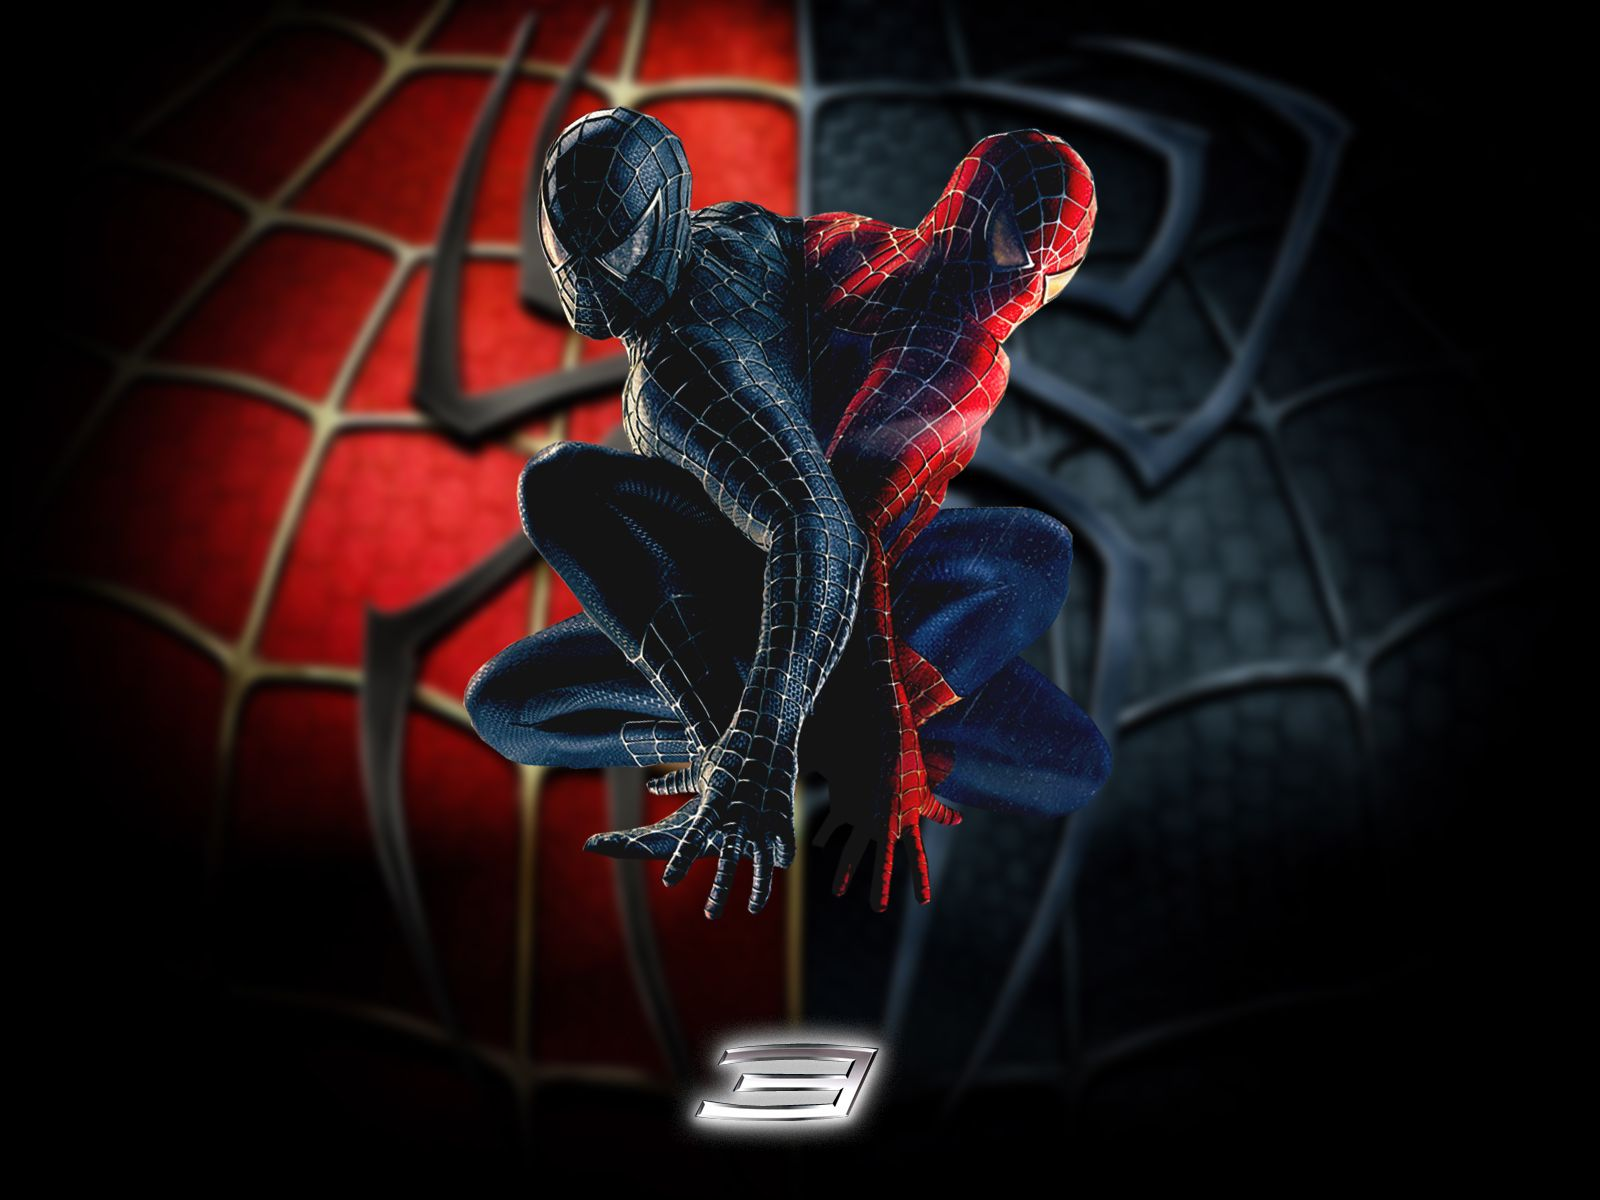 wallpapers-of-spiderman-4